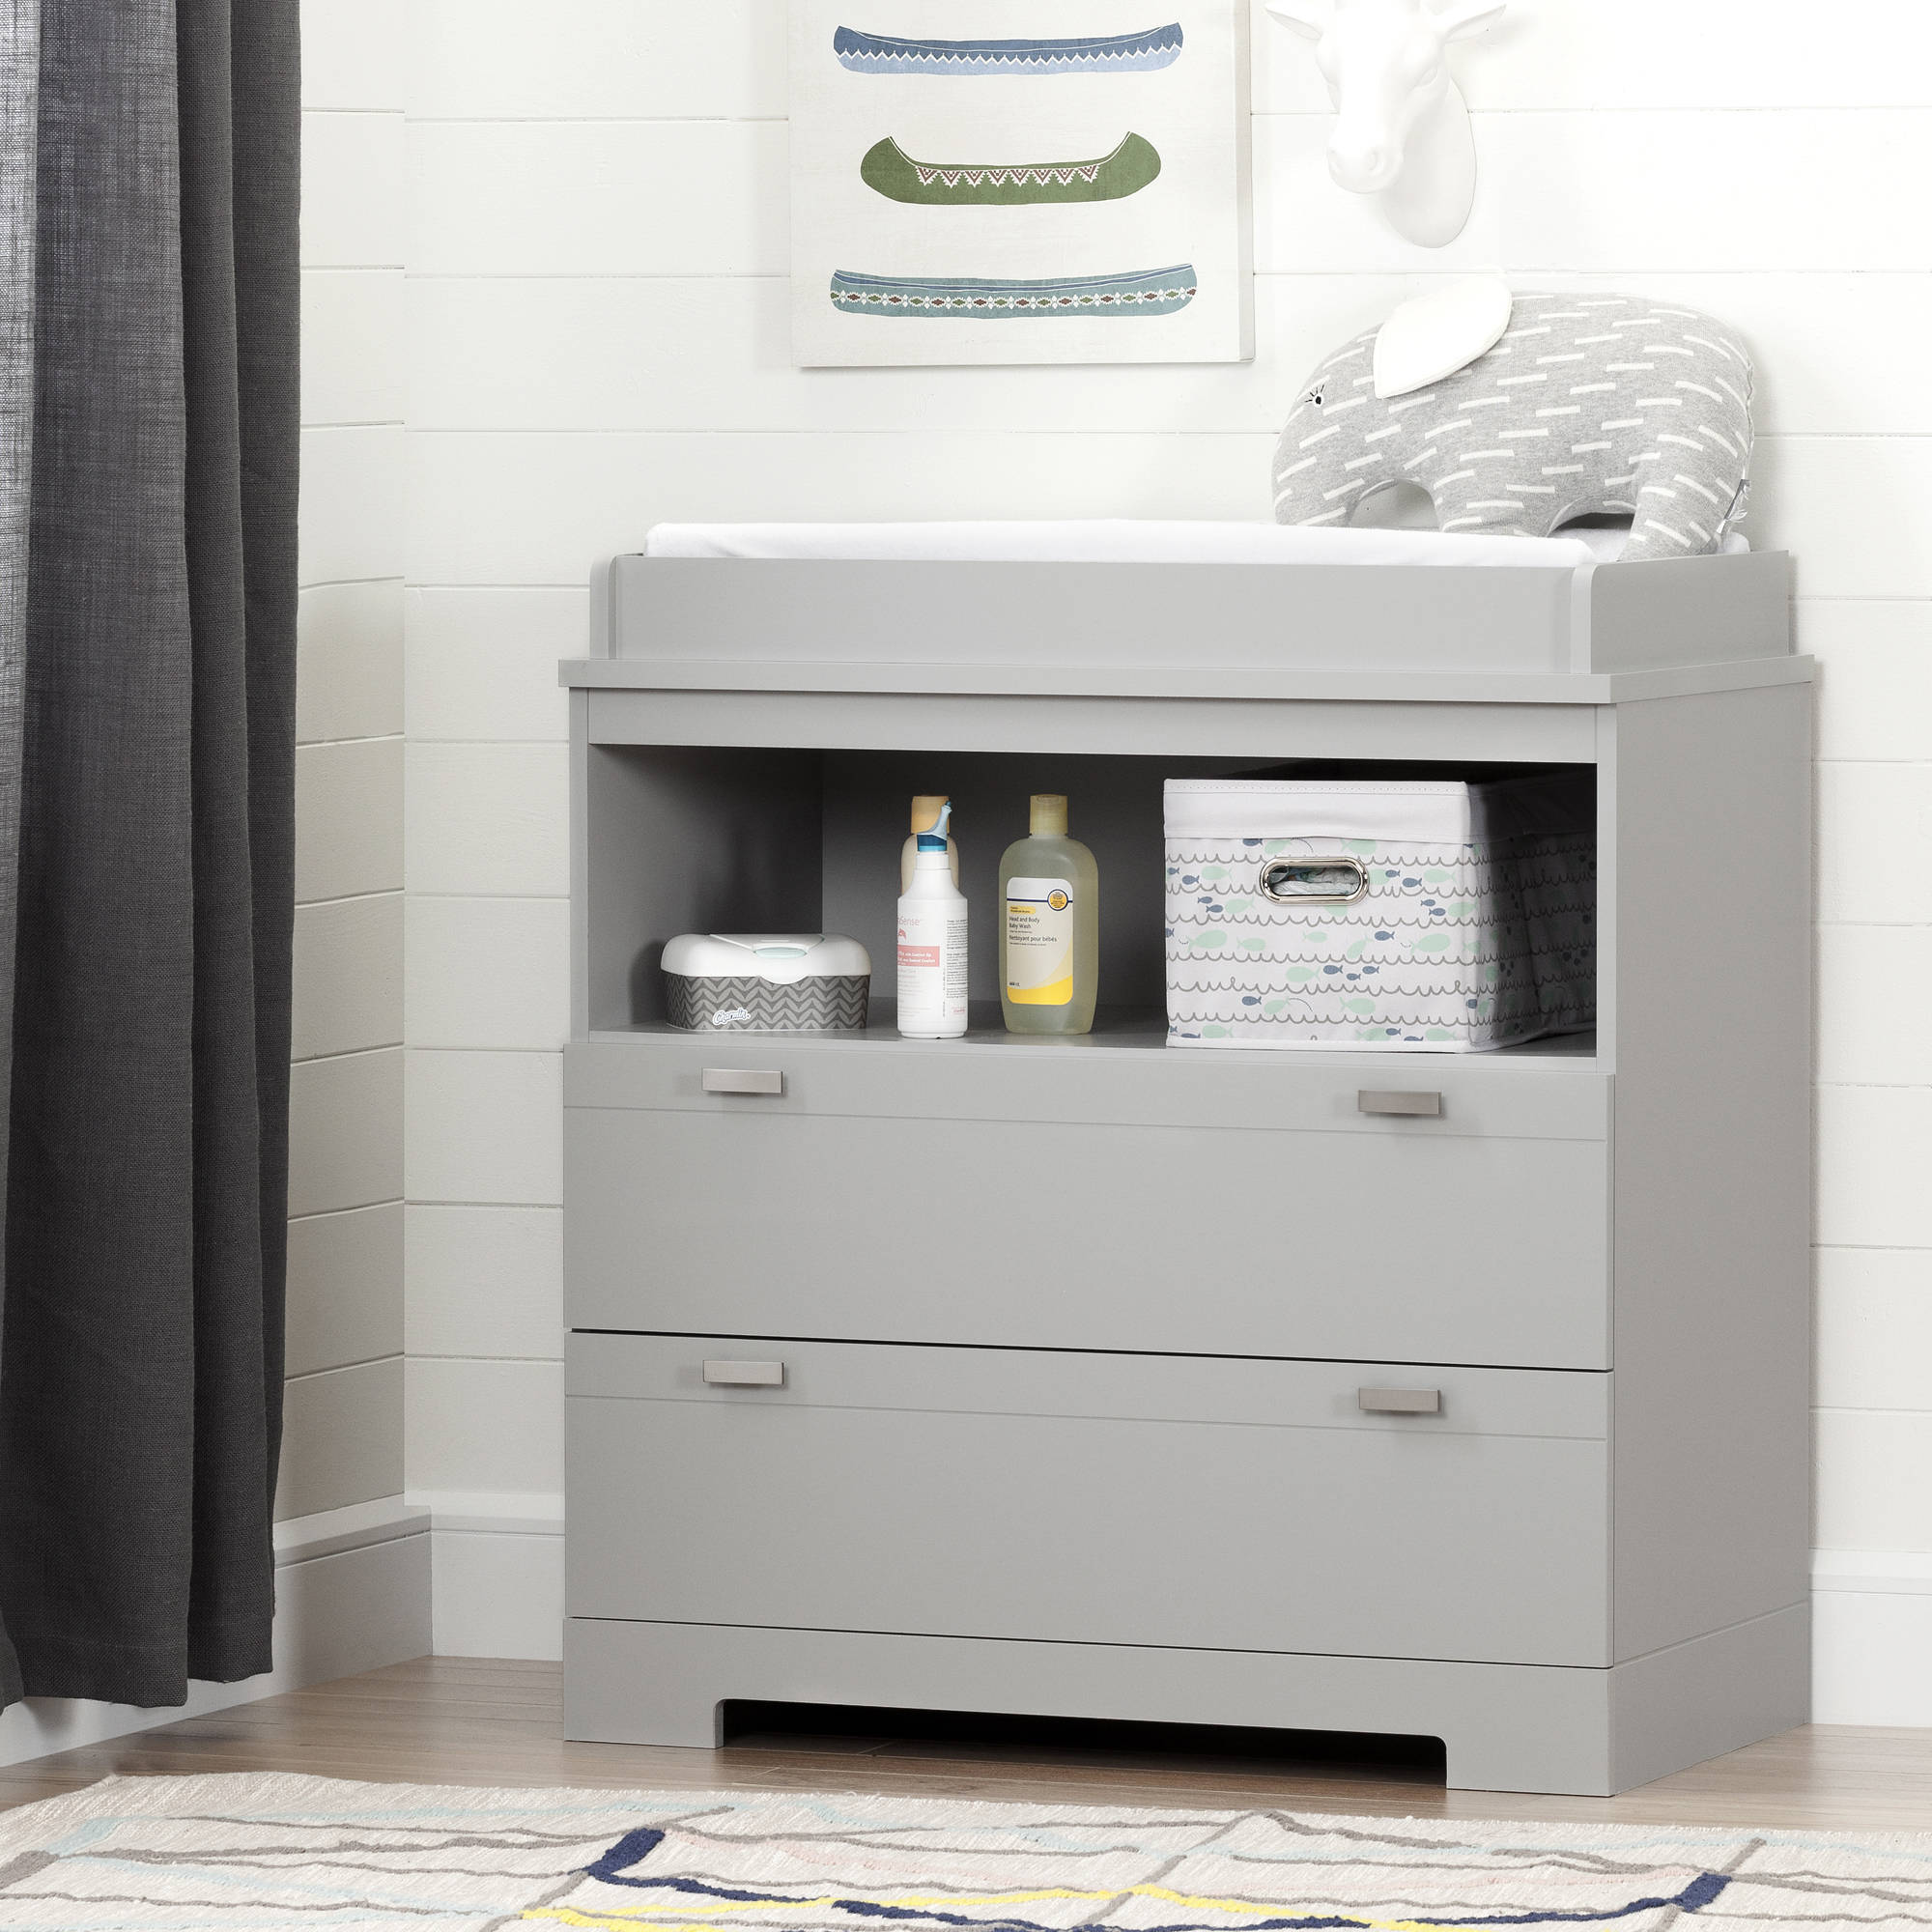 South Shore Reevo Changing Table with Storage, Multiple Finishes